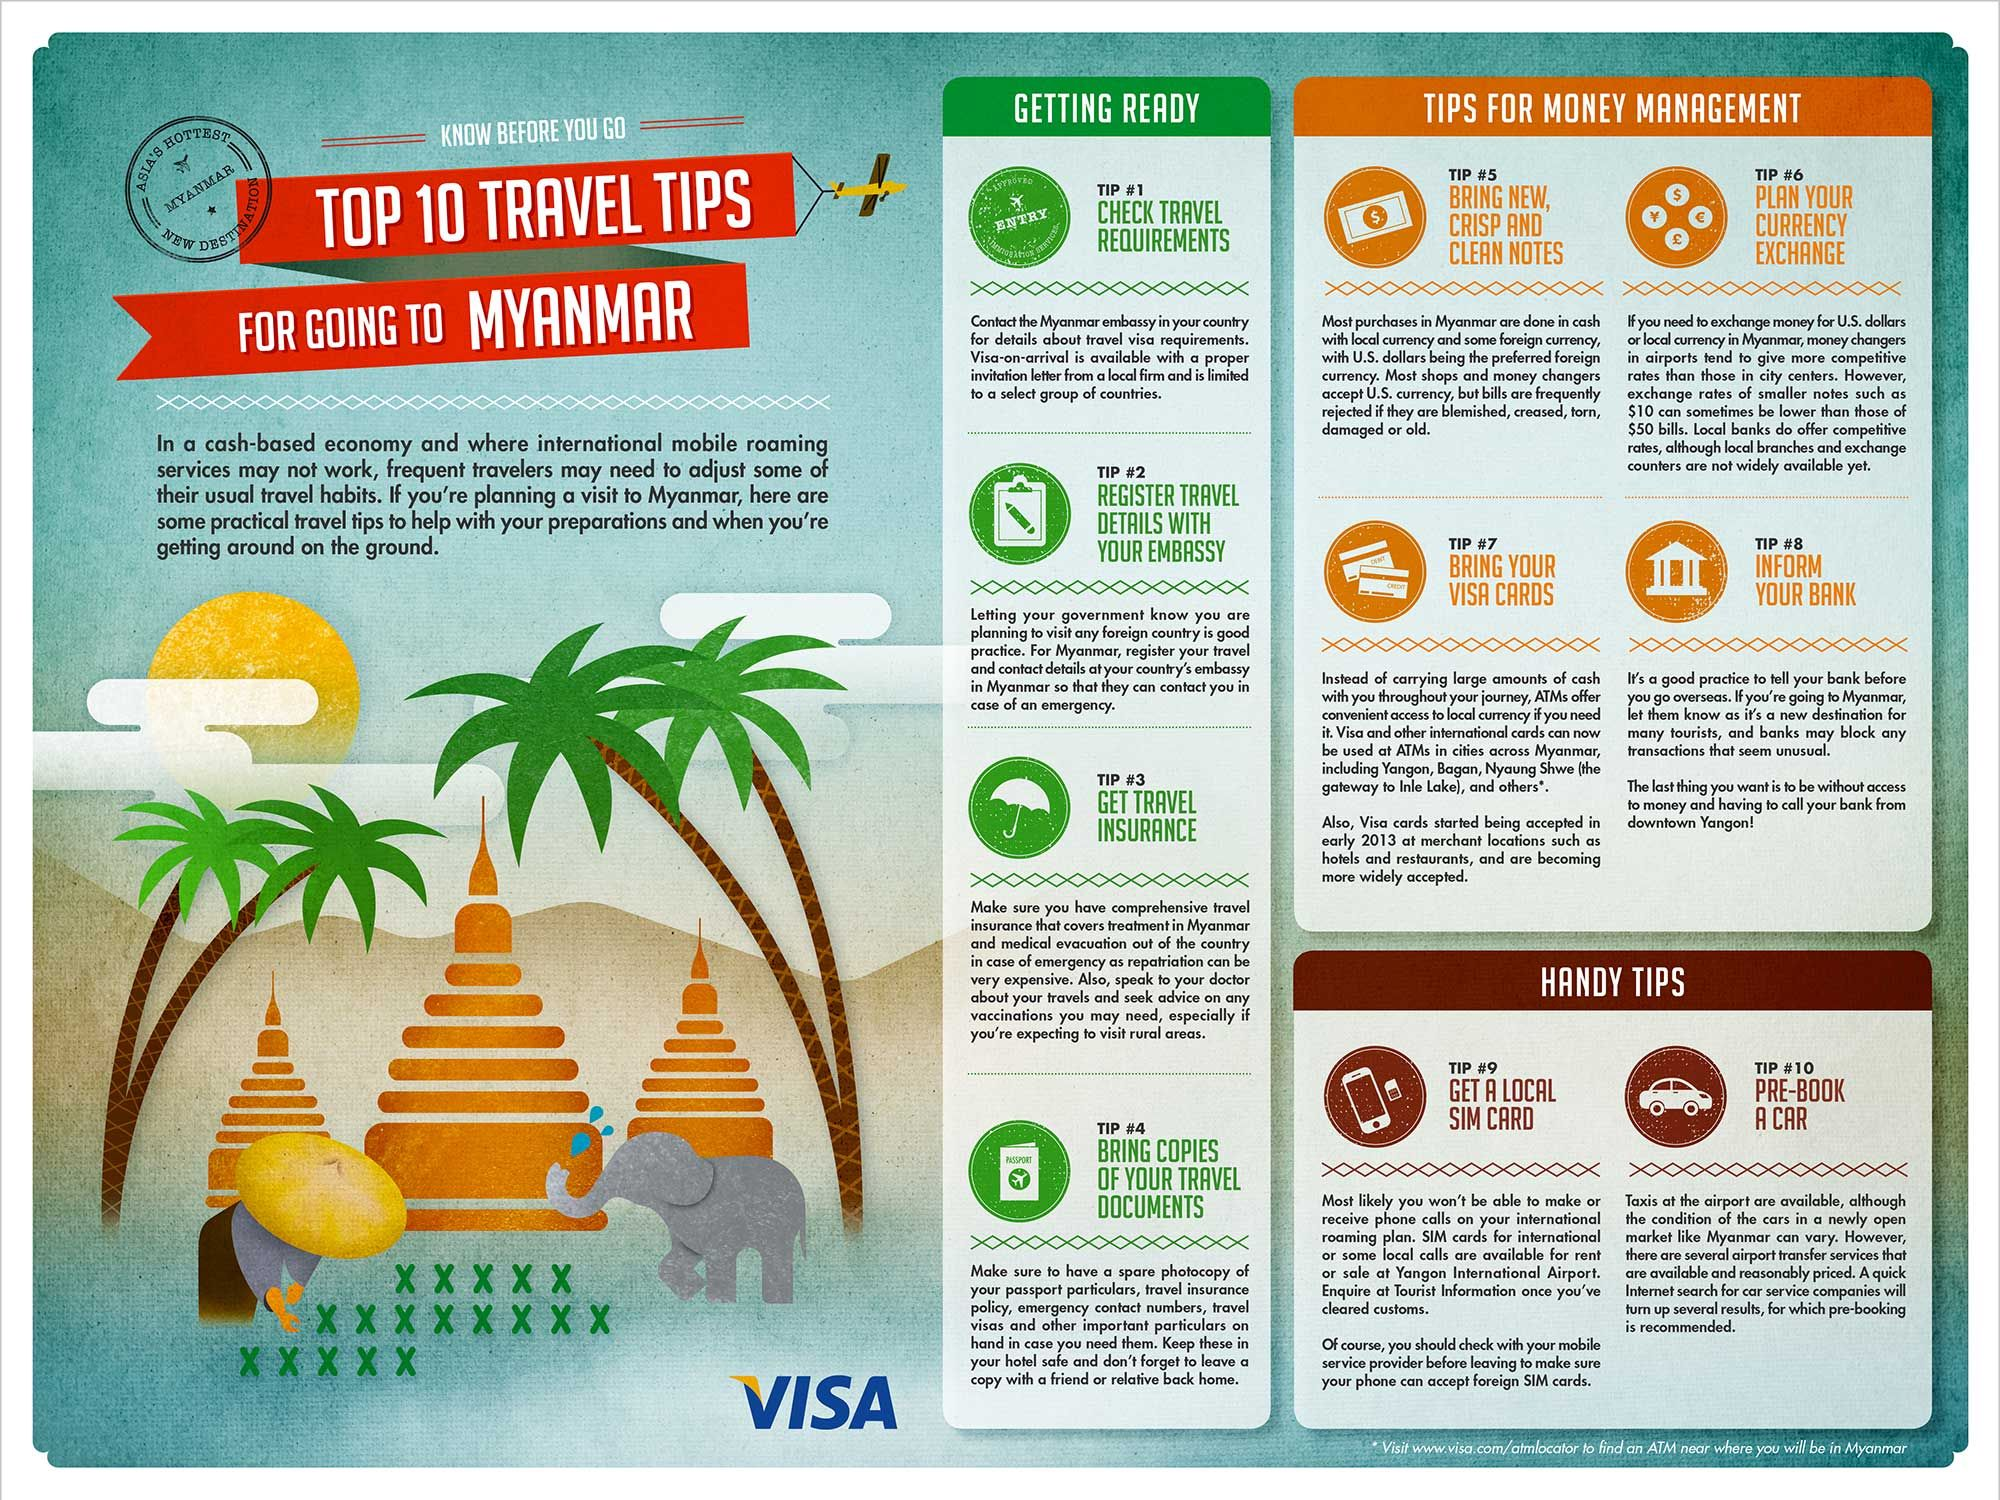 How To Get Specialist Travel Insurance For Extreme Travelling